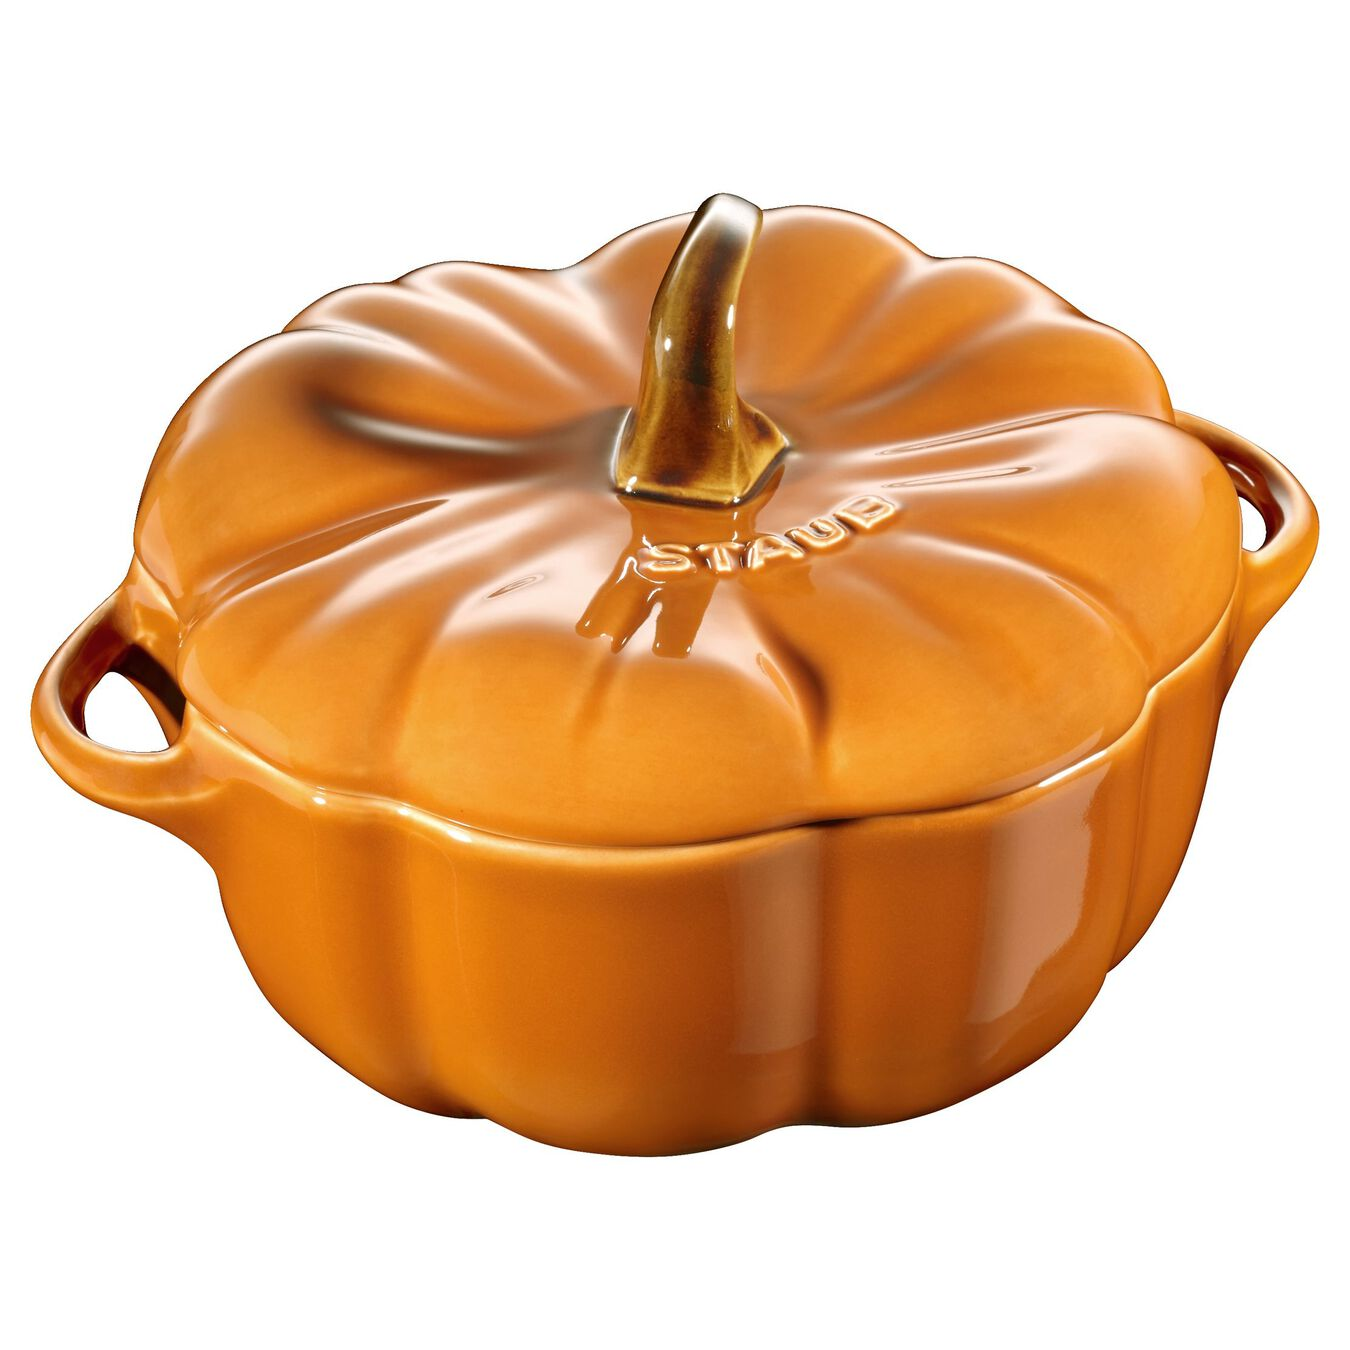 24-oz Pumpkin Cocotte - Burnt Orange,,large 1